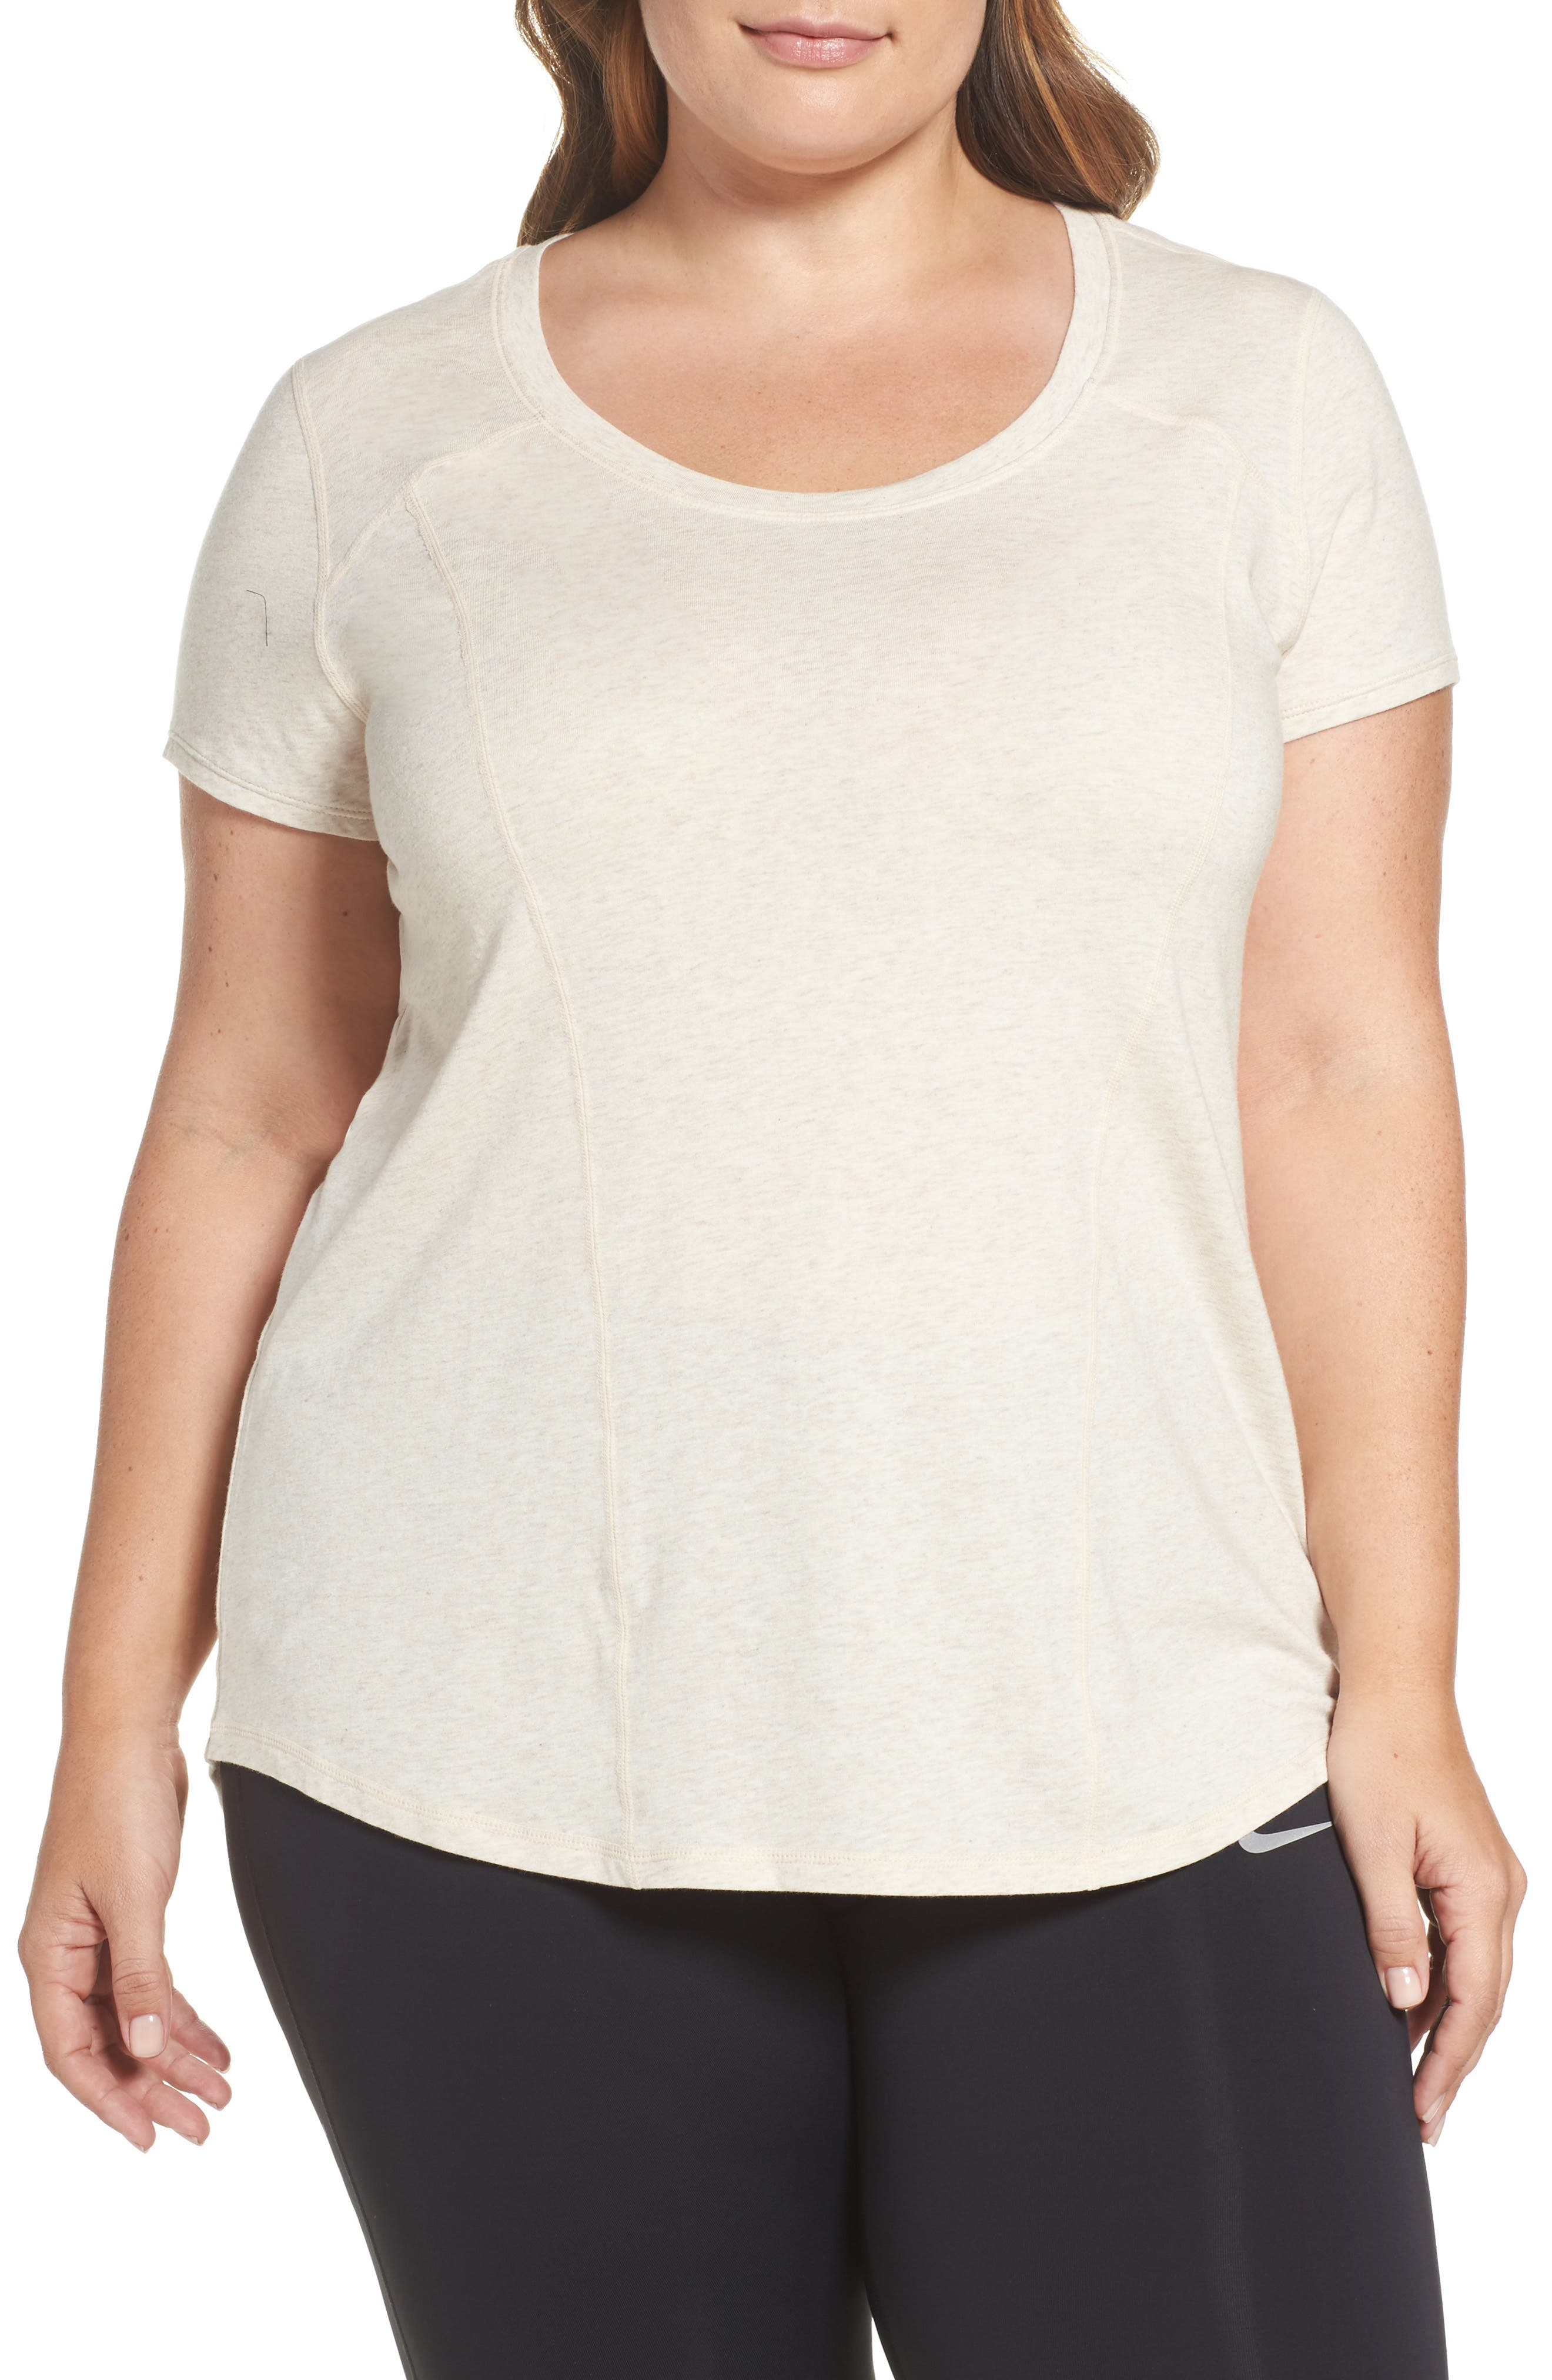 Zella 'Siesta' Short Sleeve Tee (Plus Size)